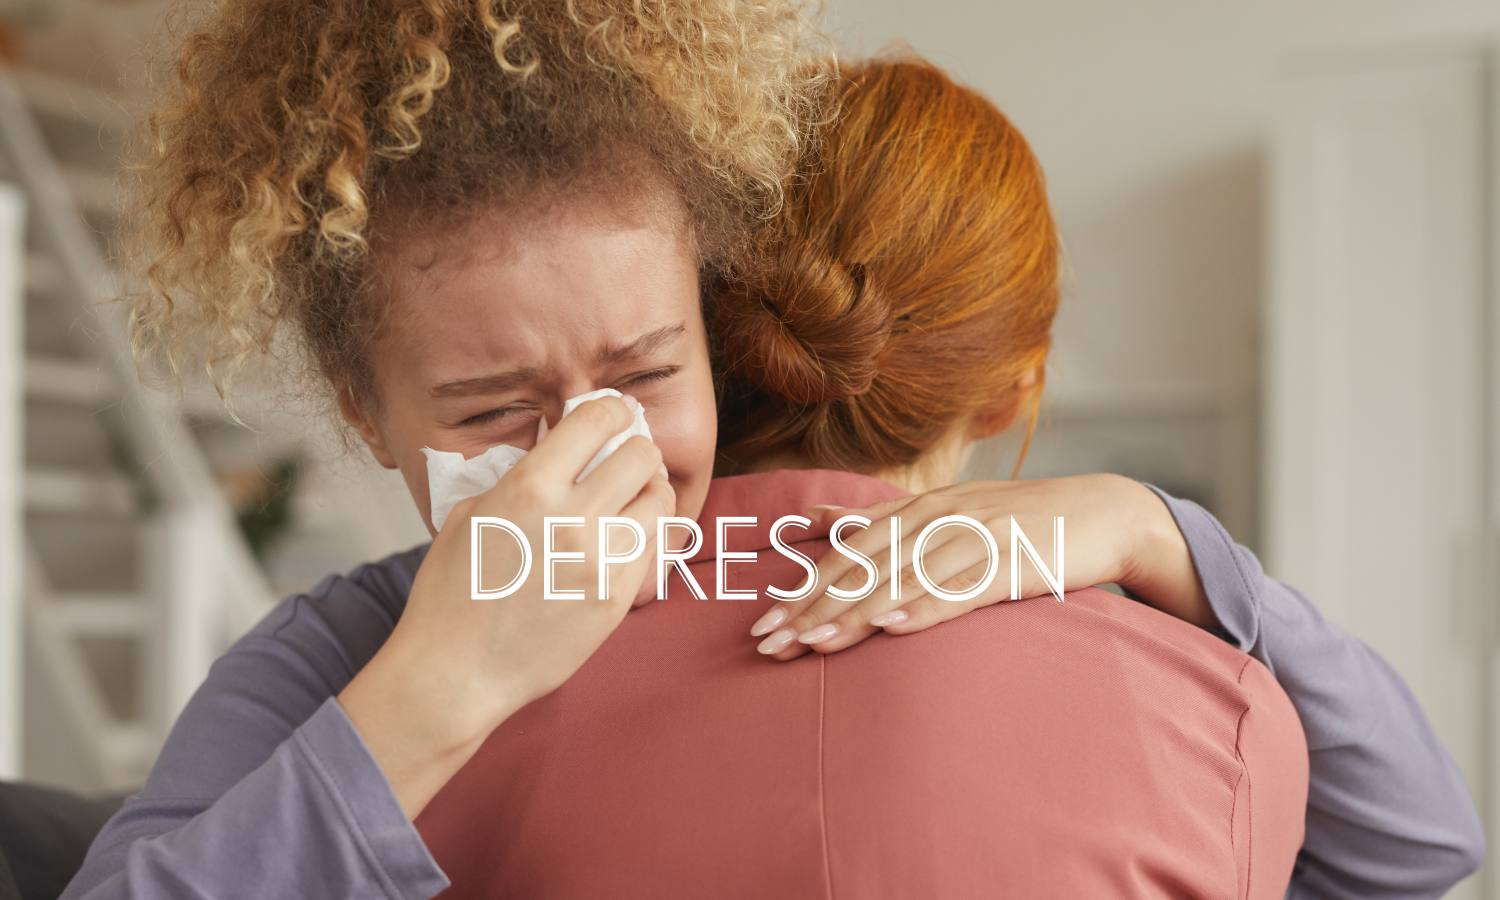 10 Home Remedies for Depression